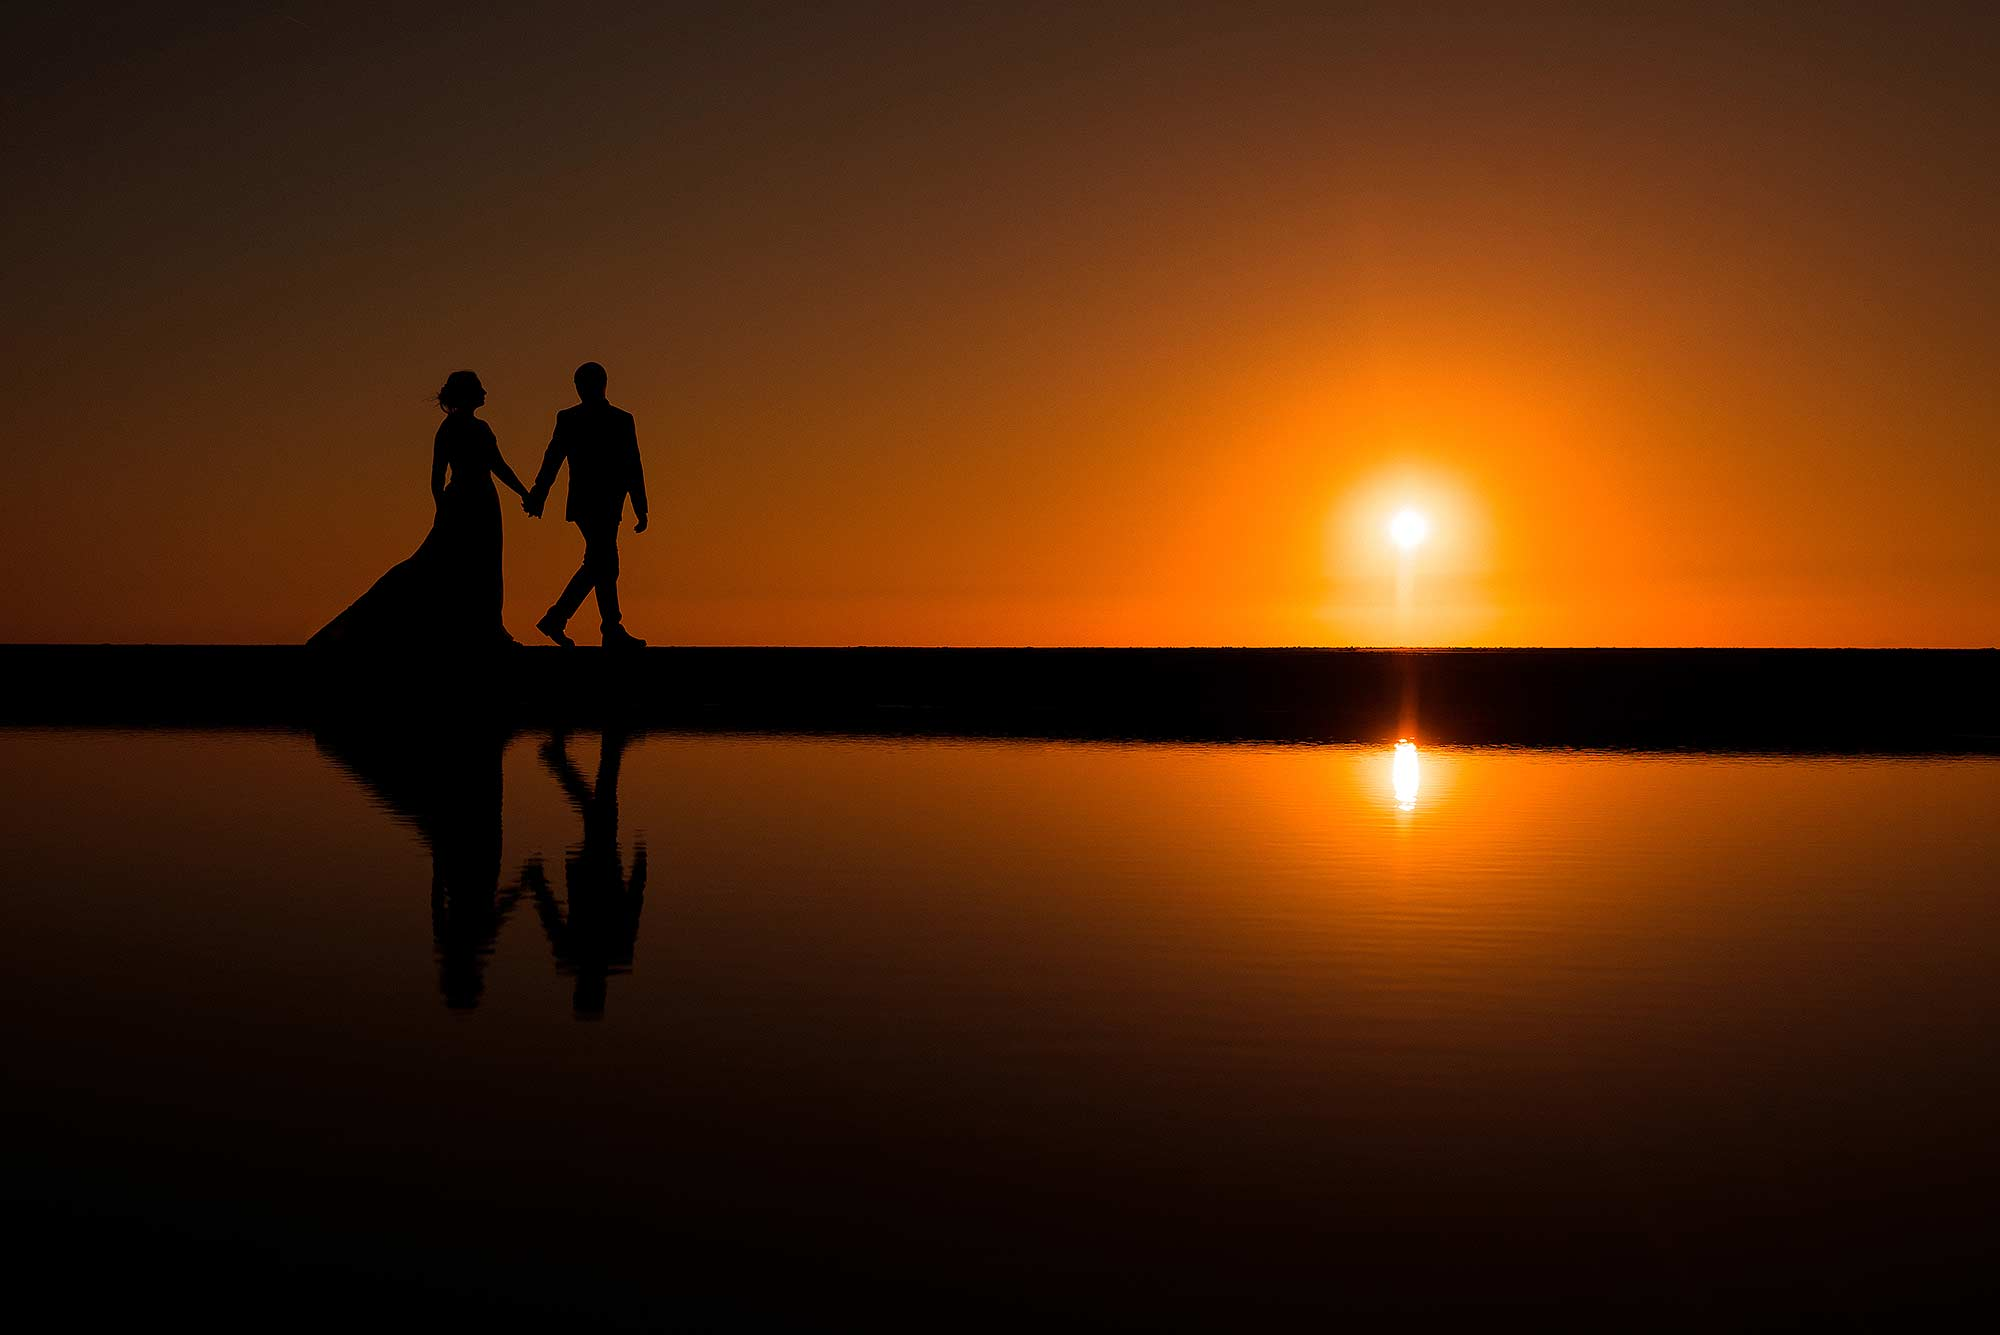 beautiful silhouette photograph of bride and groom at sunset